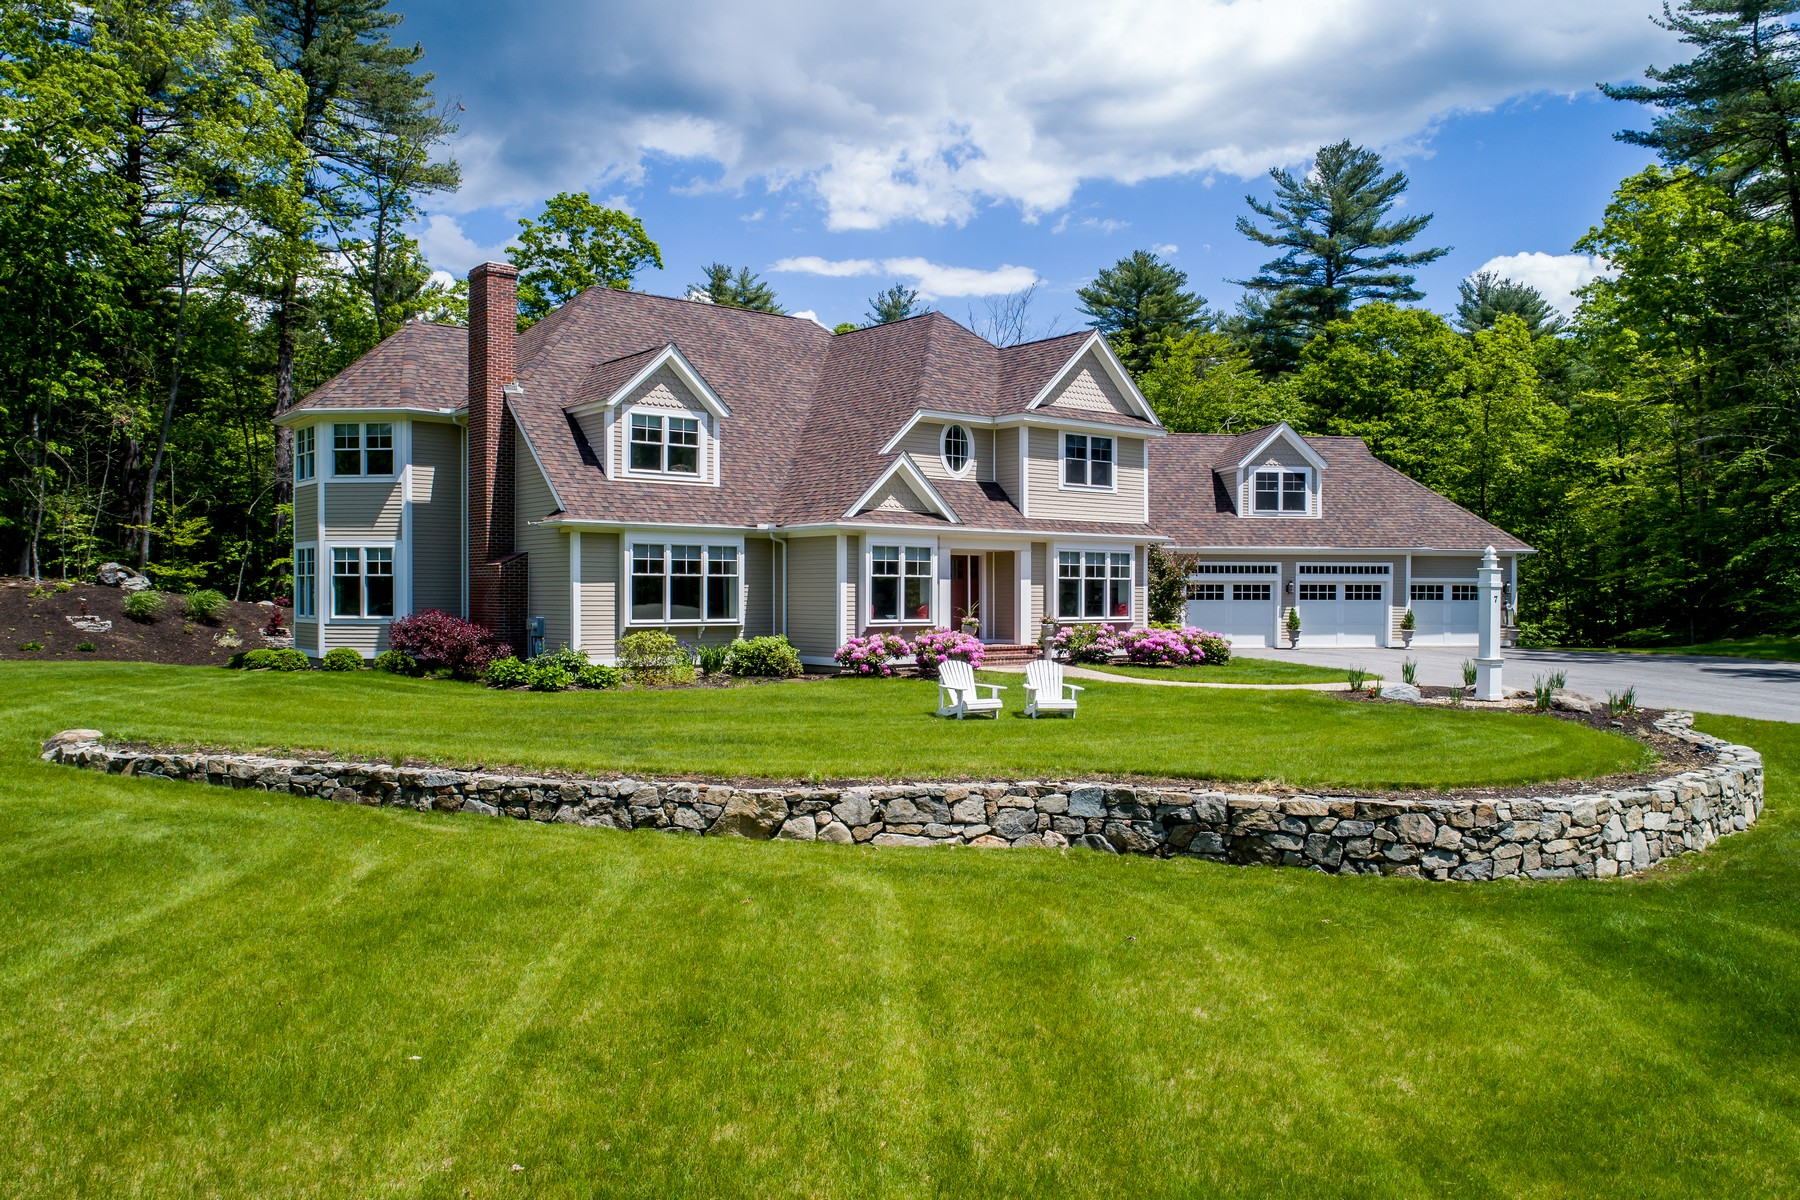 Single Family Home for Sale at Modern Living in Country Setting 7 Sagamore Lane Boxford, Massachusetts, 01921 United States